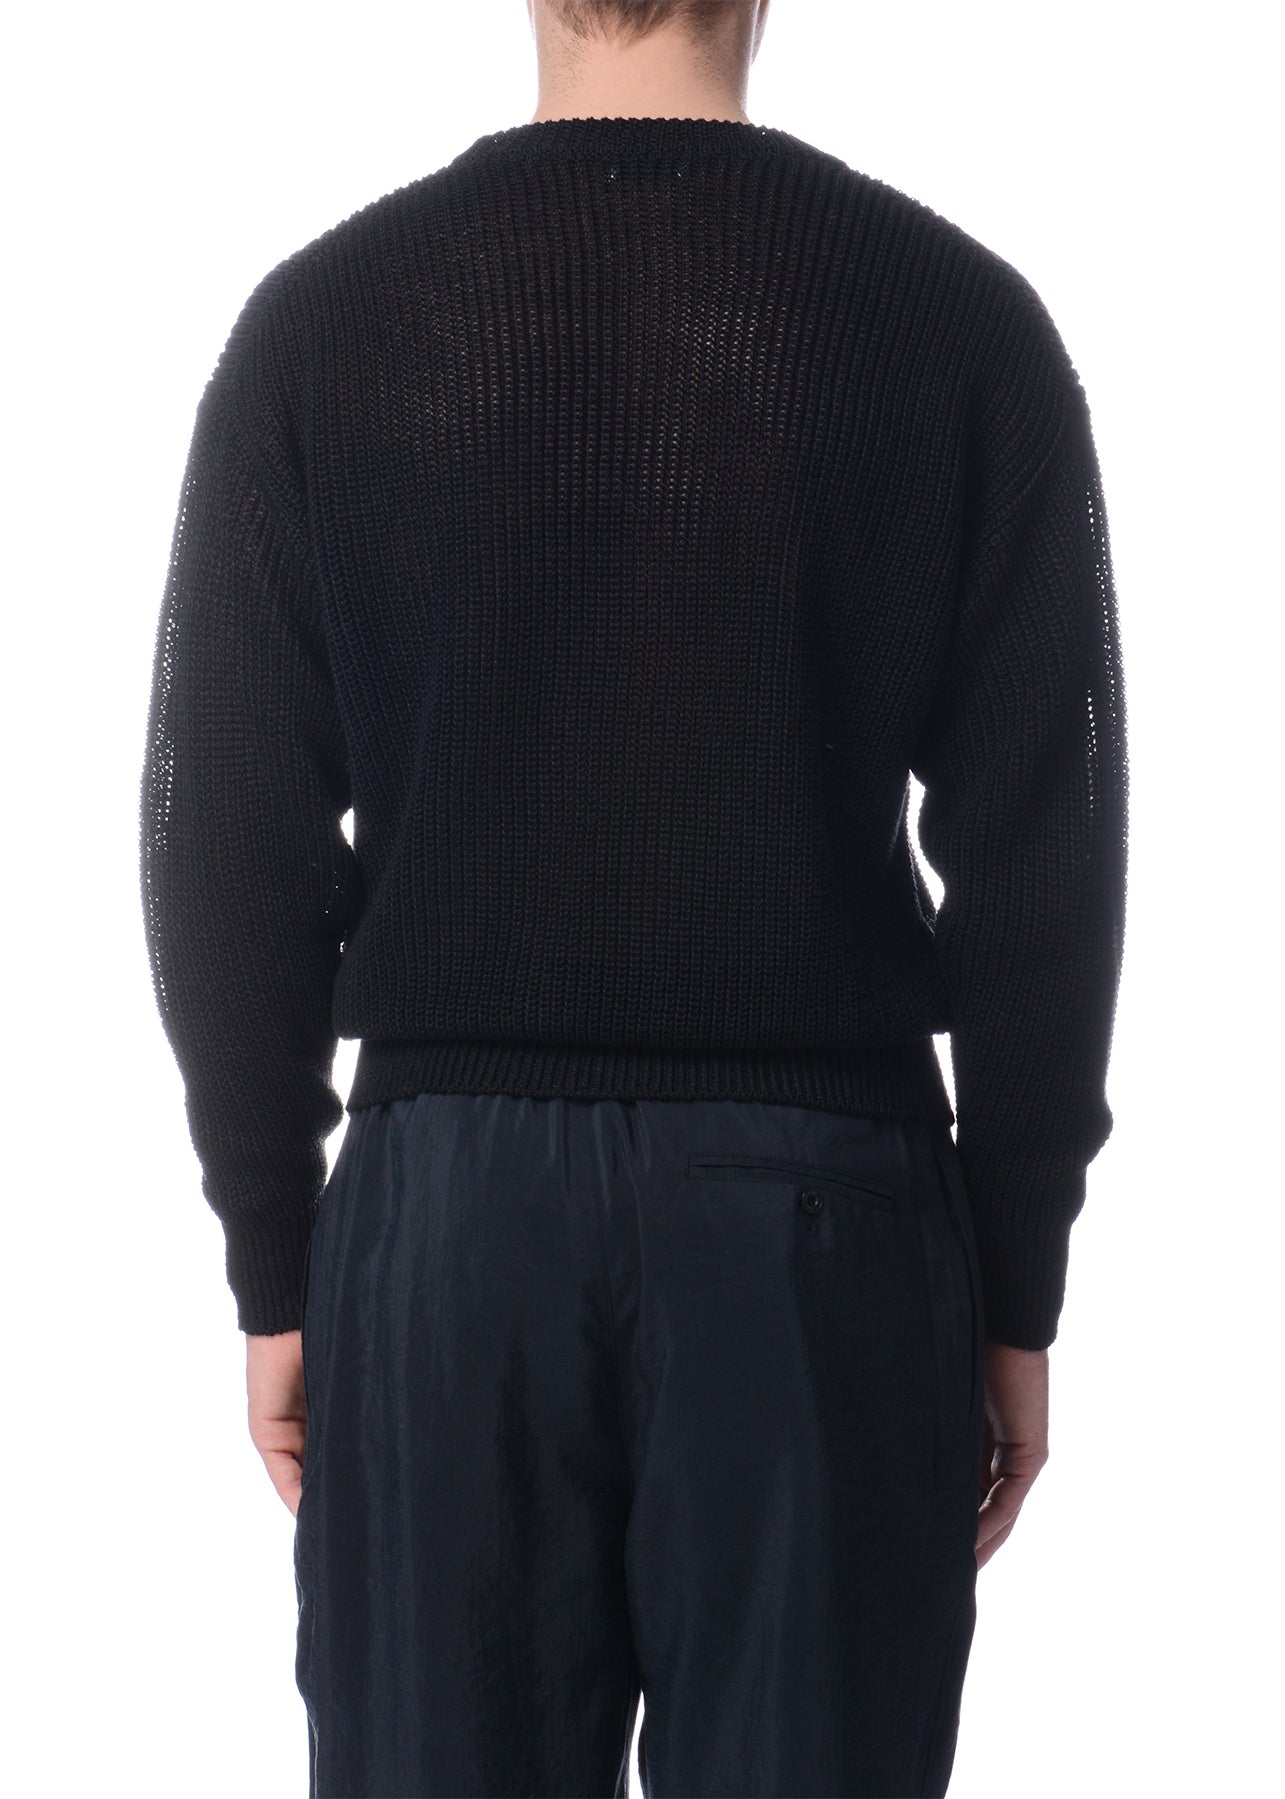 Chandail en Tricot de Lin Noir|Black Linen Knitted Sweater